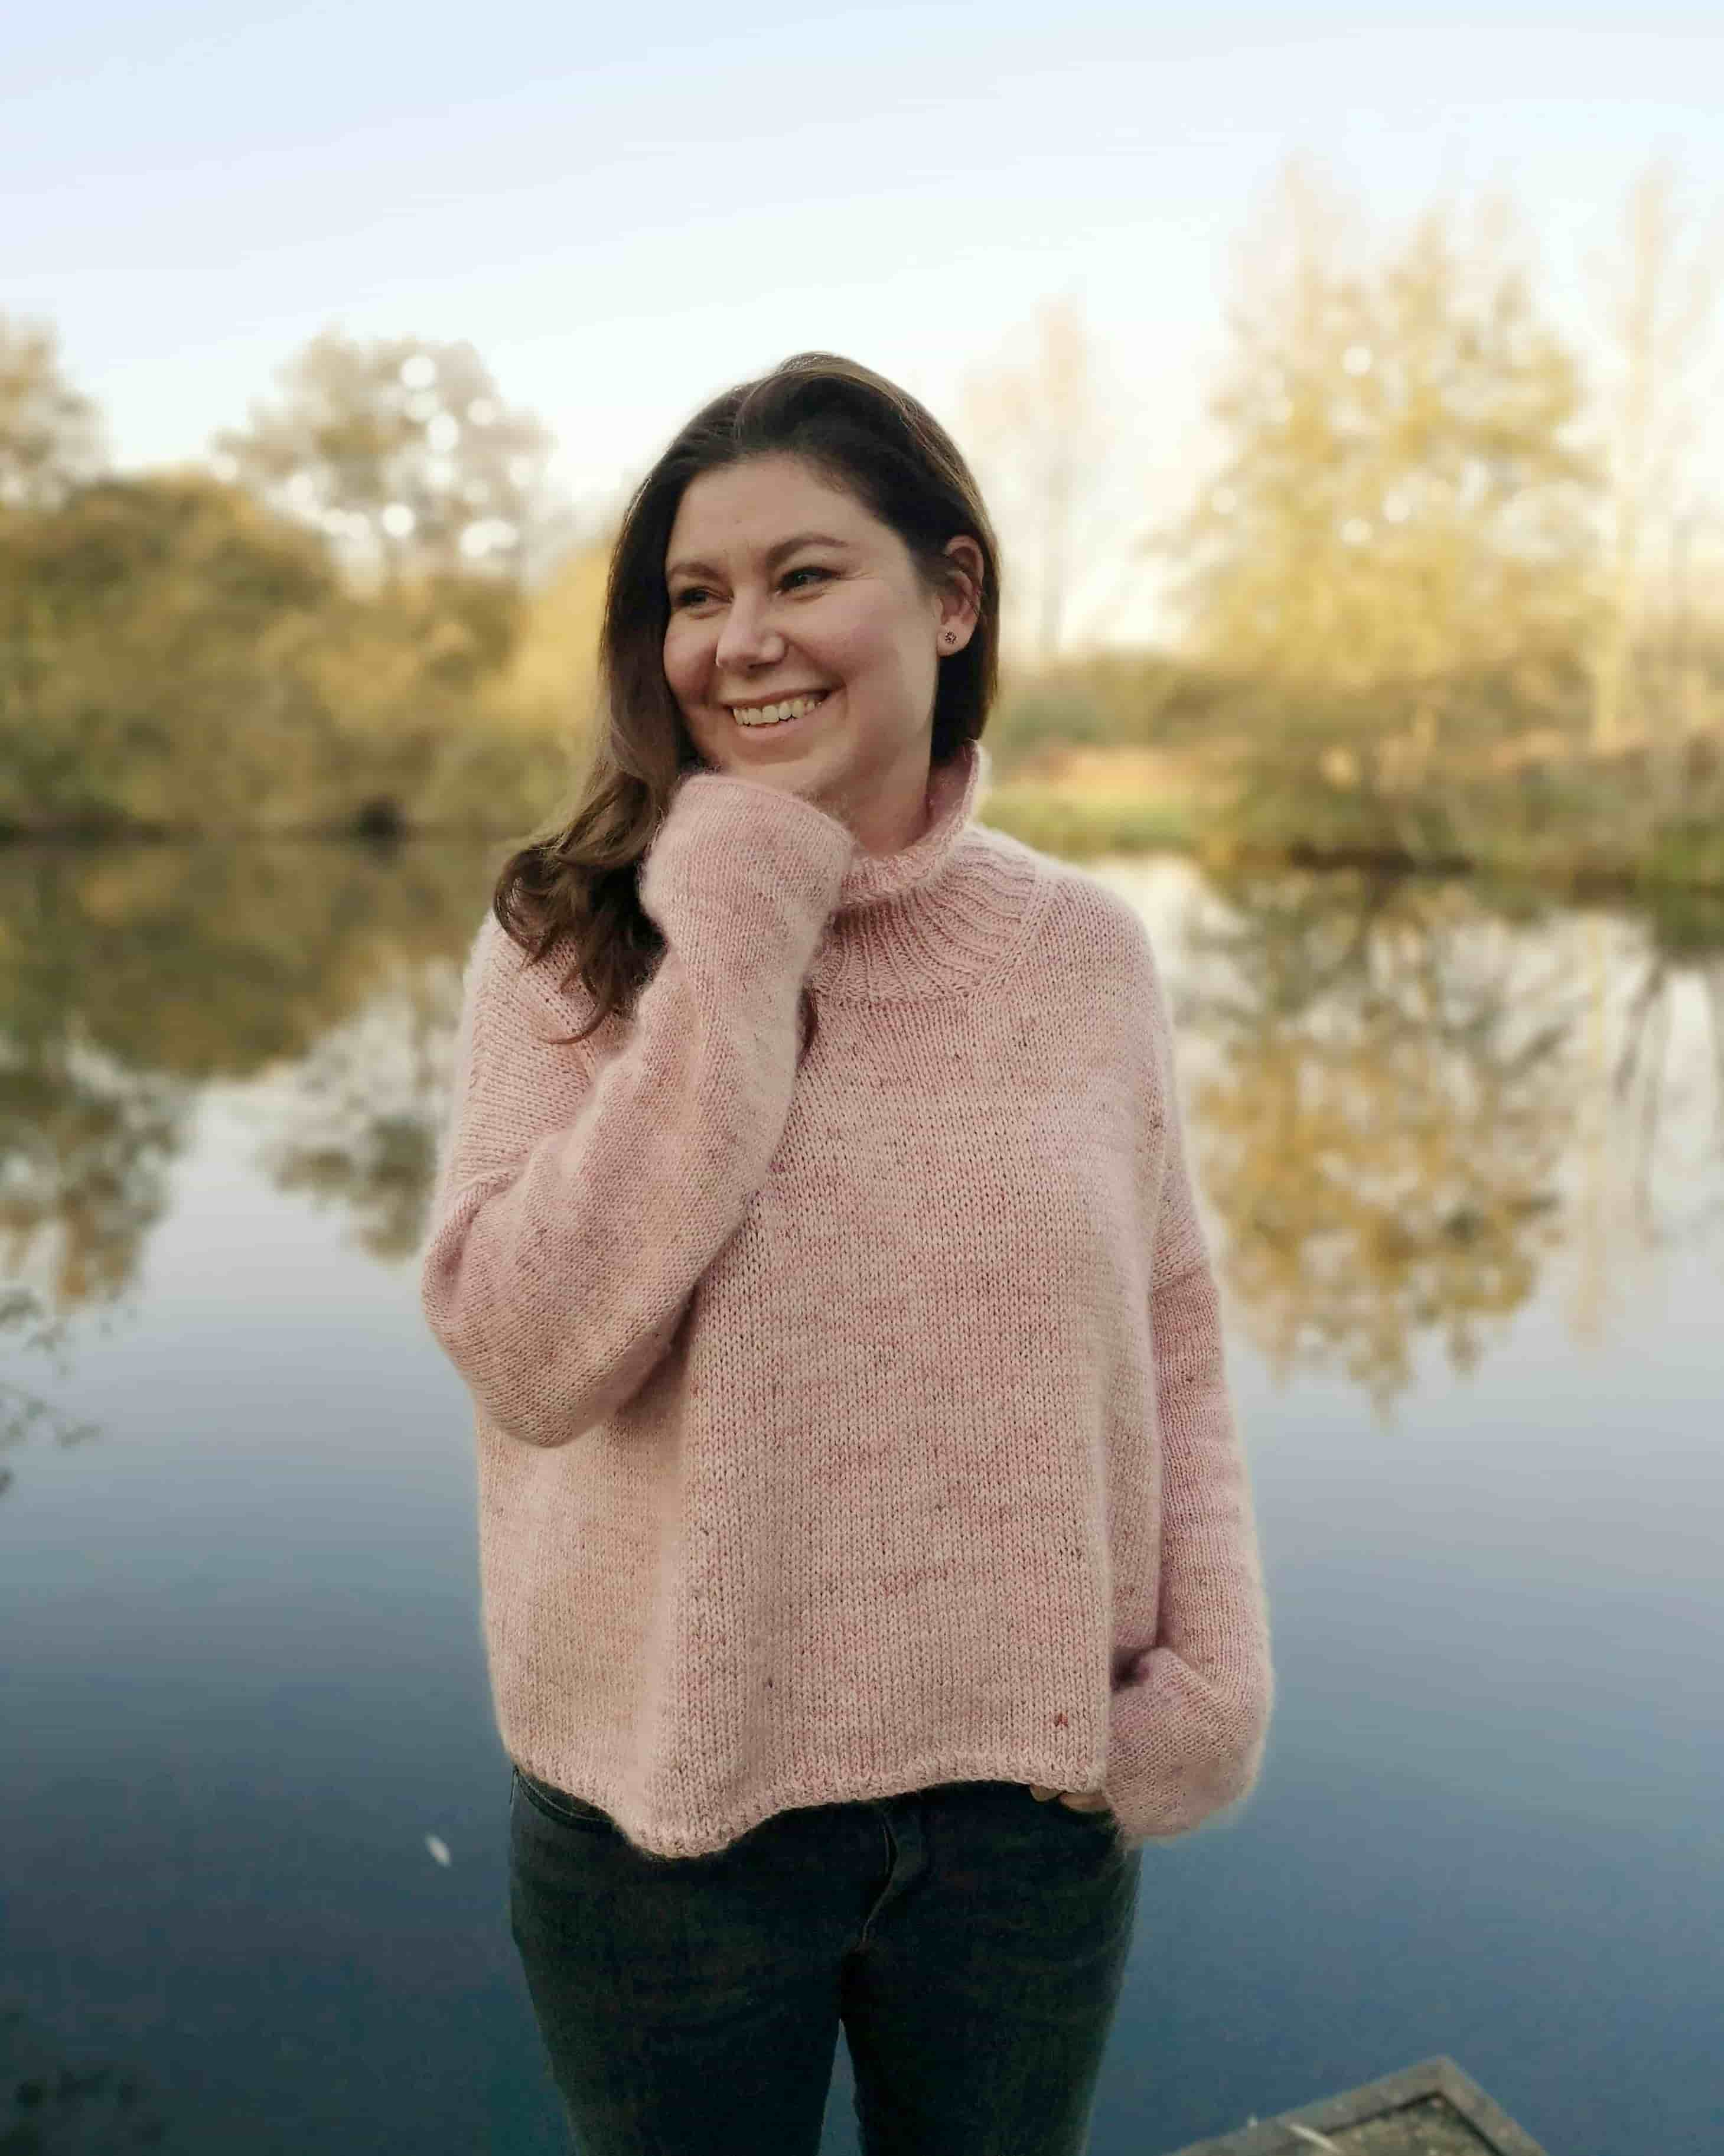 Wollmuschi sweater in pink colors worn by a women